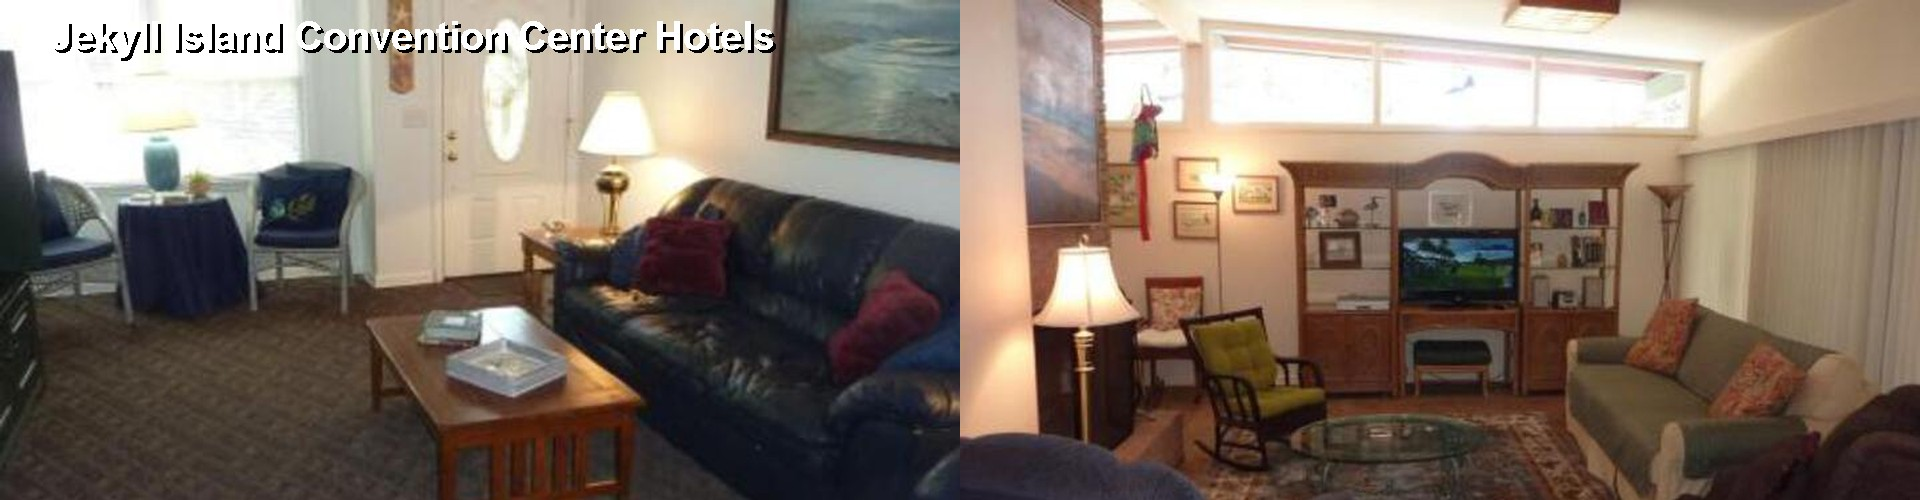 5 Best Hotels near Jekyll Island Convention Center